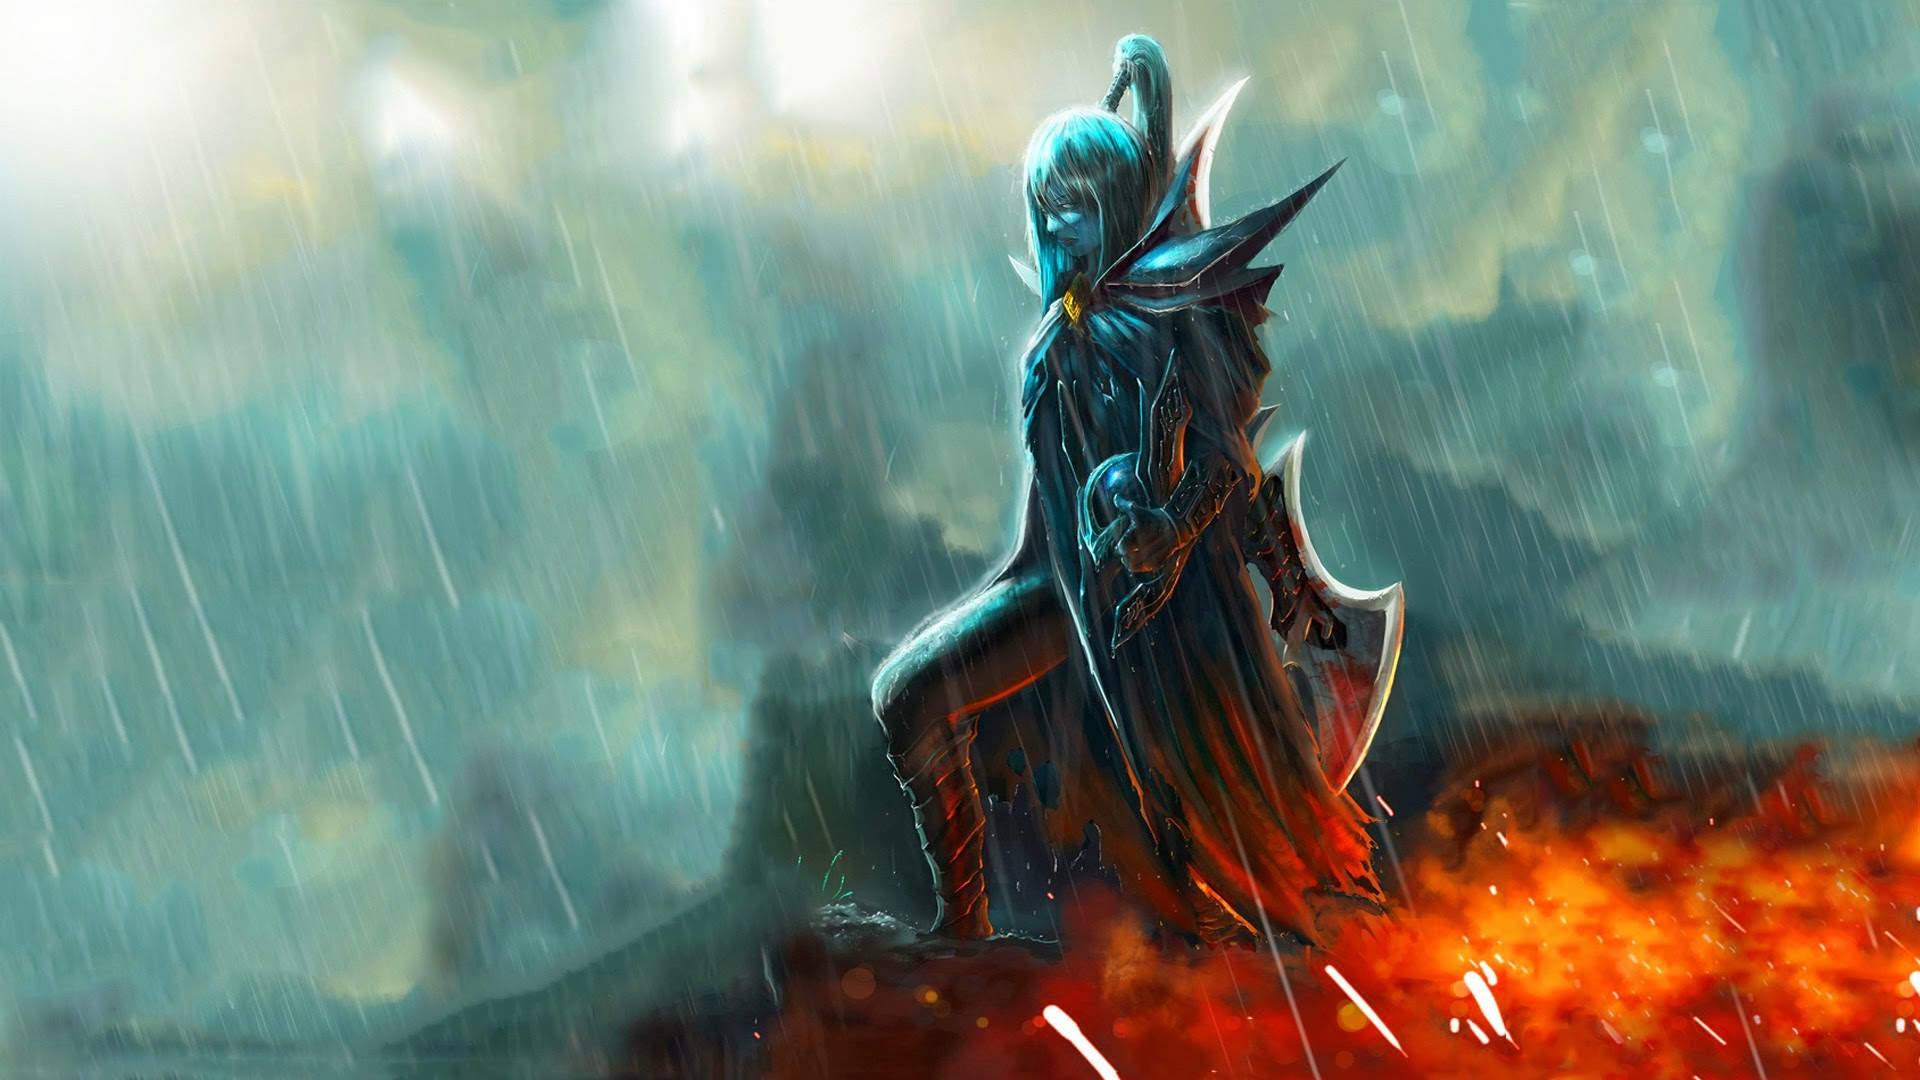 mortred phantom assassin dot hd wallpaper x